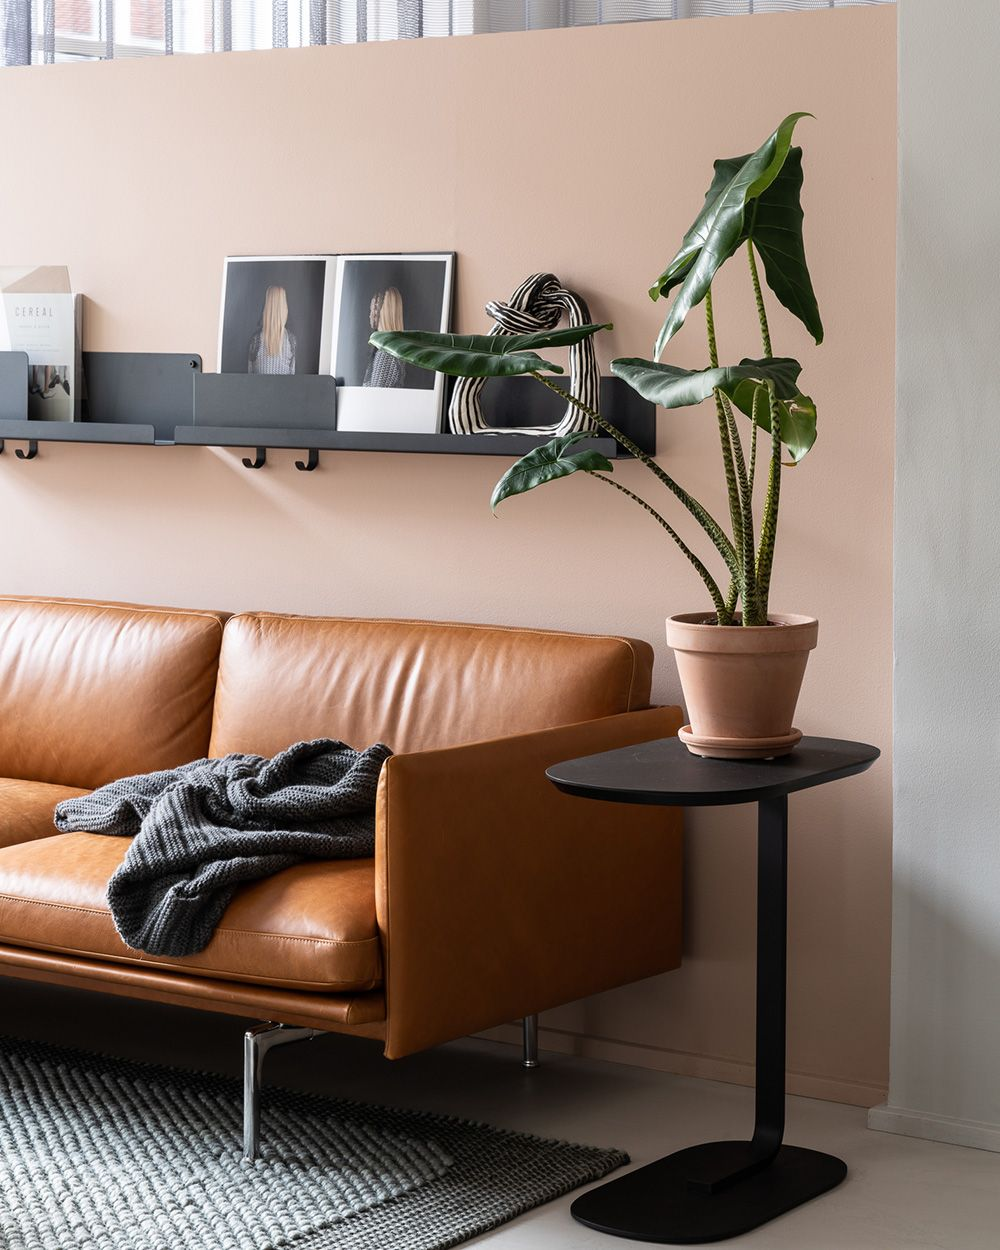 Clean And Timeless Scandinavian Leather Sofa Decor Inspiration From Muuto The Modern Living Room Inspiration Scandinavian Sofa Design Living Room Inspiration